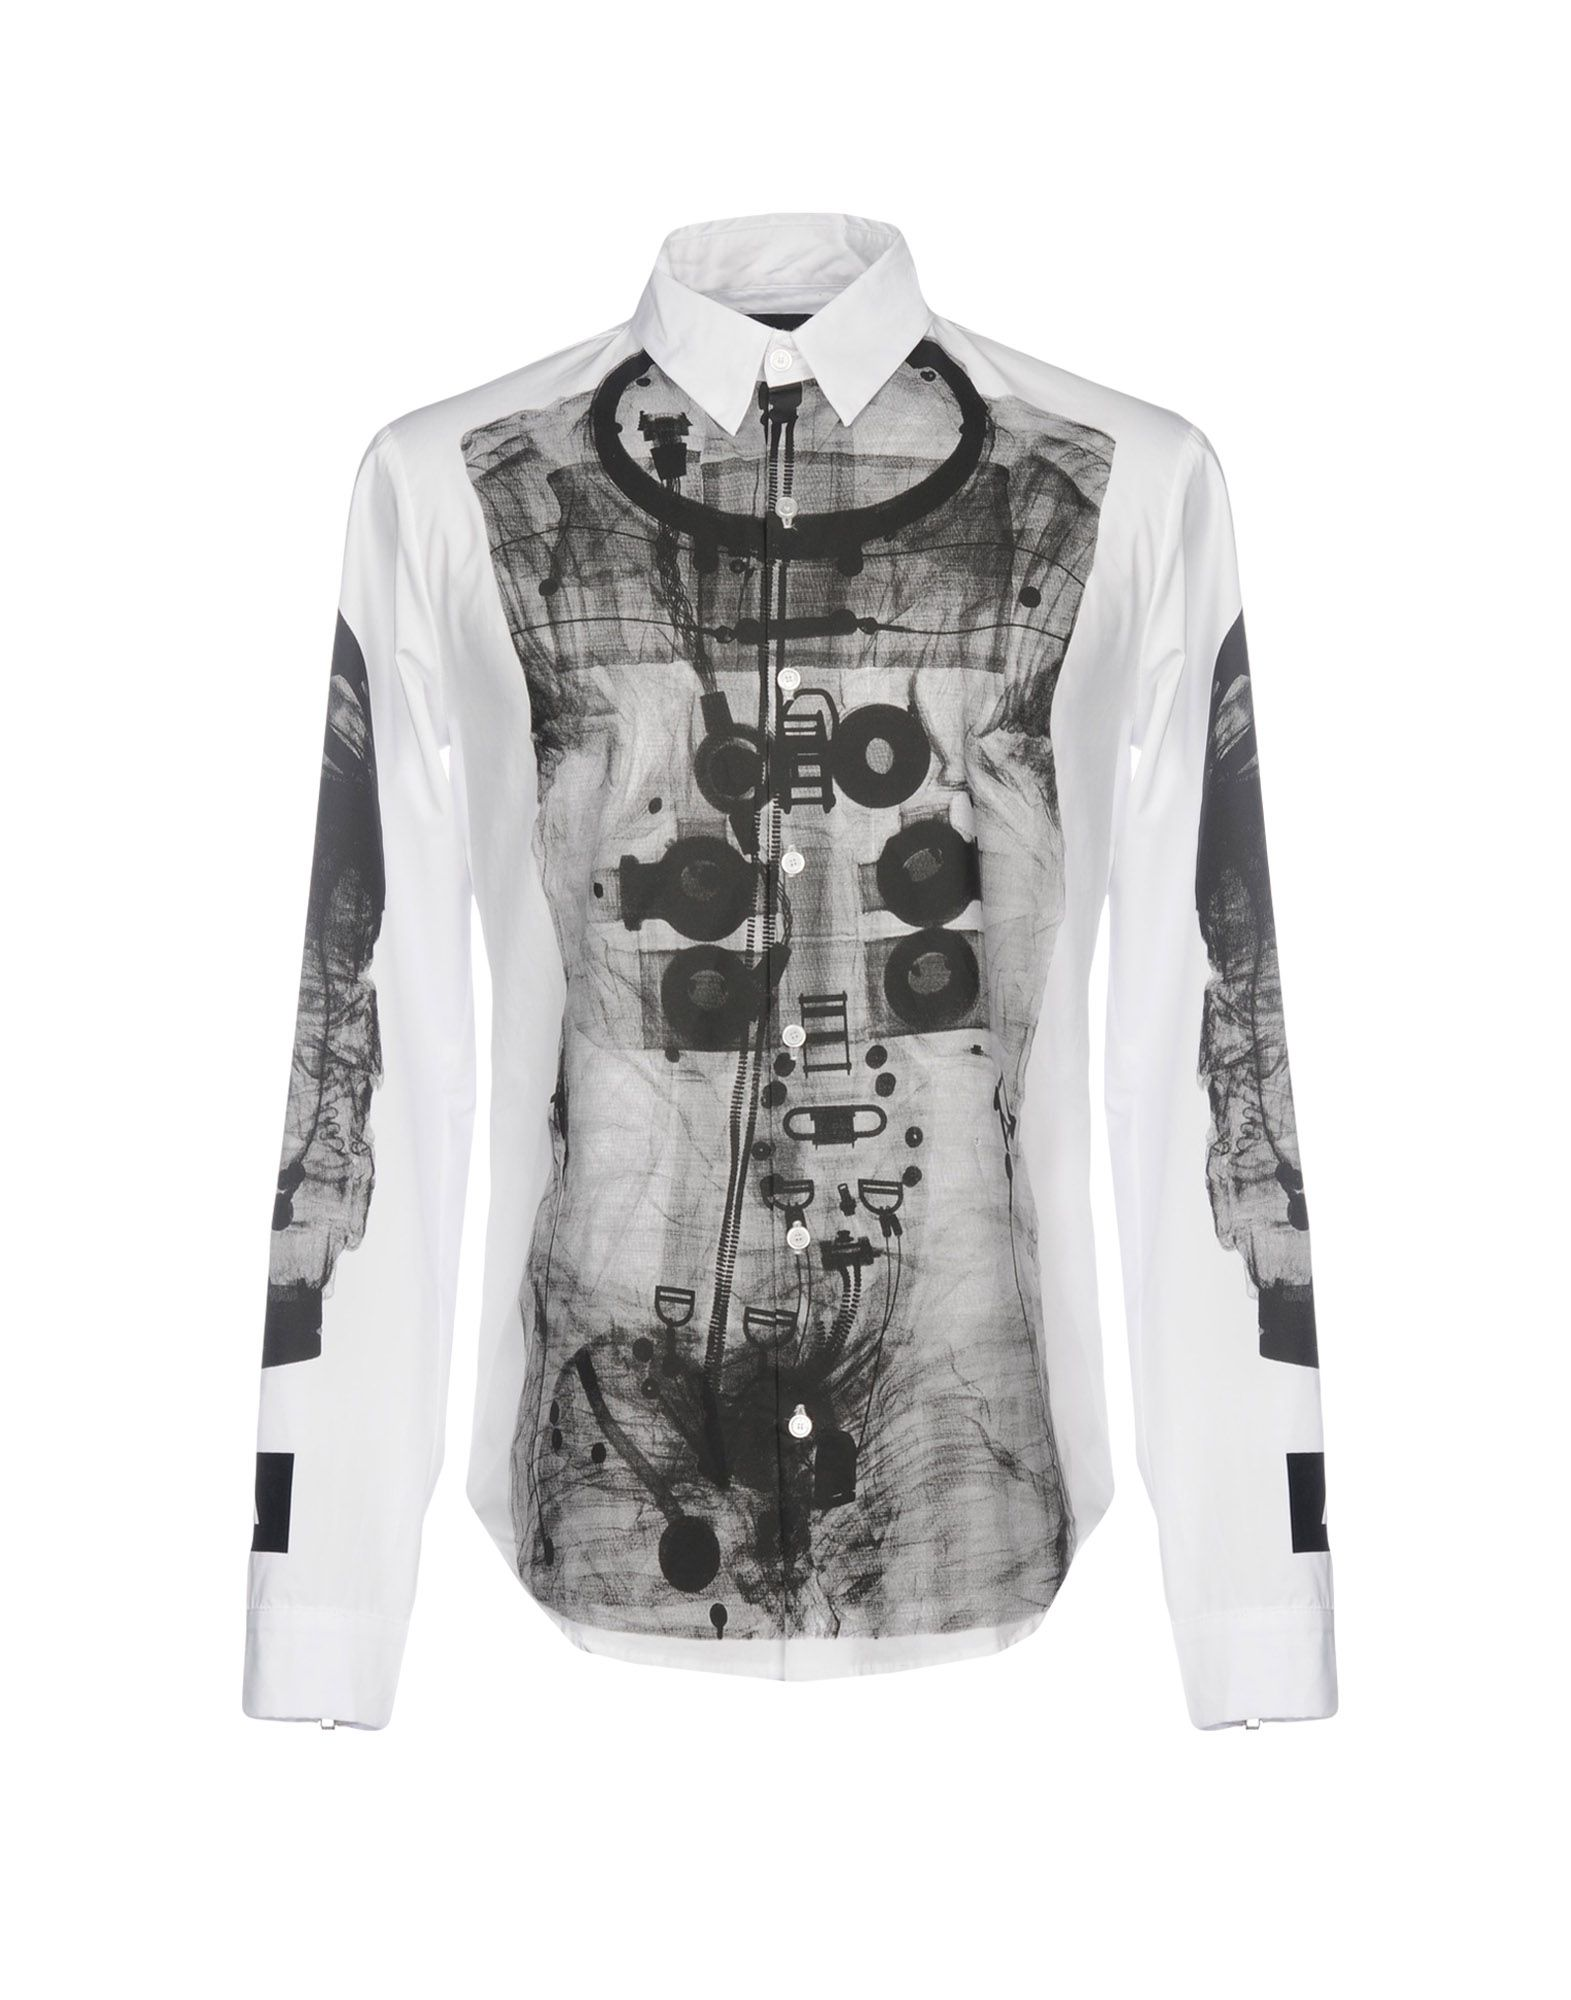 Camicia Fantasia Hba  Hood By Air Uomo - Acquista online su